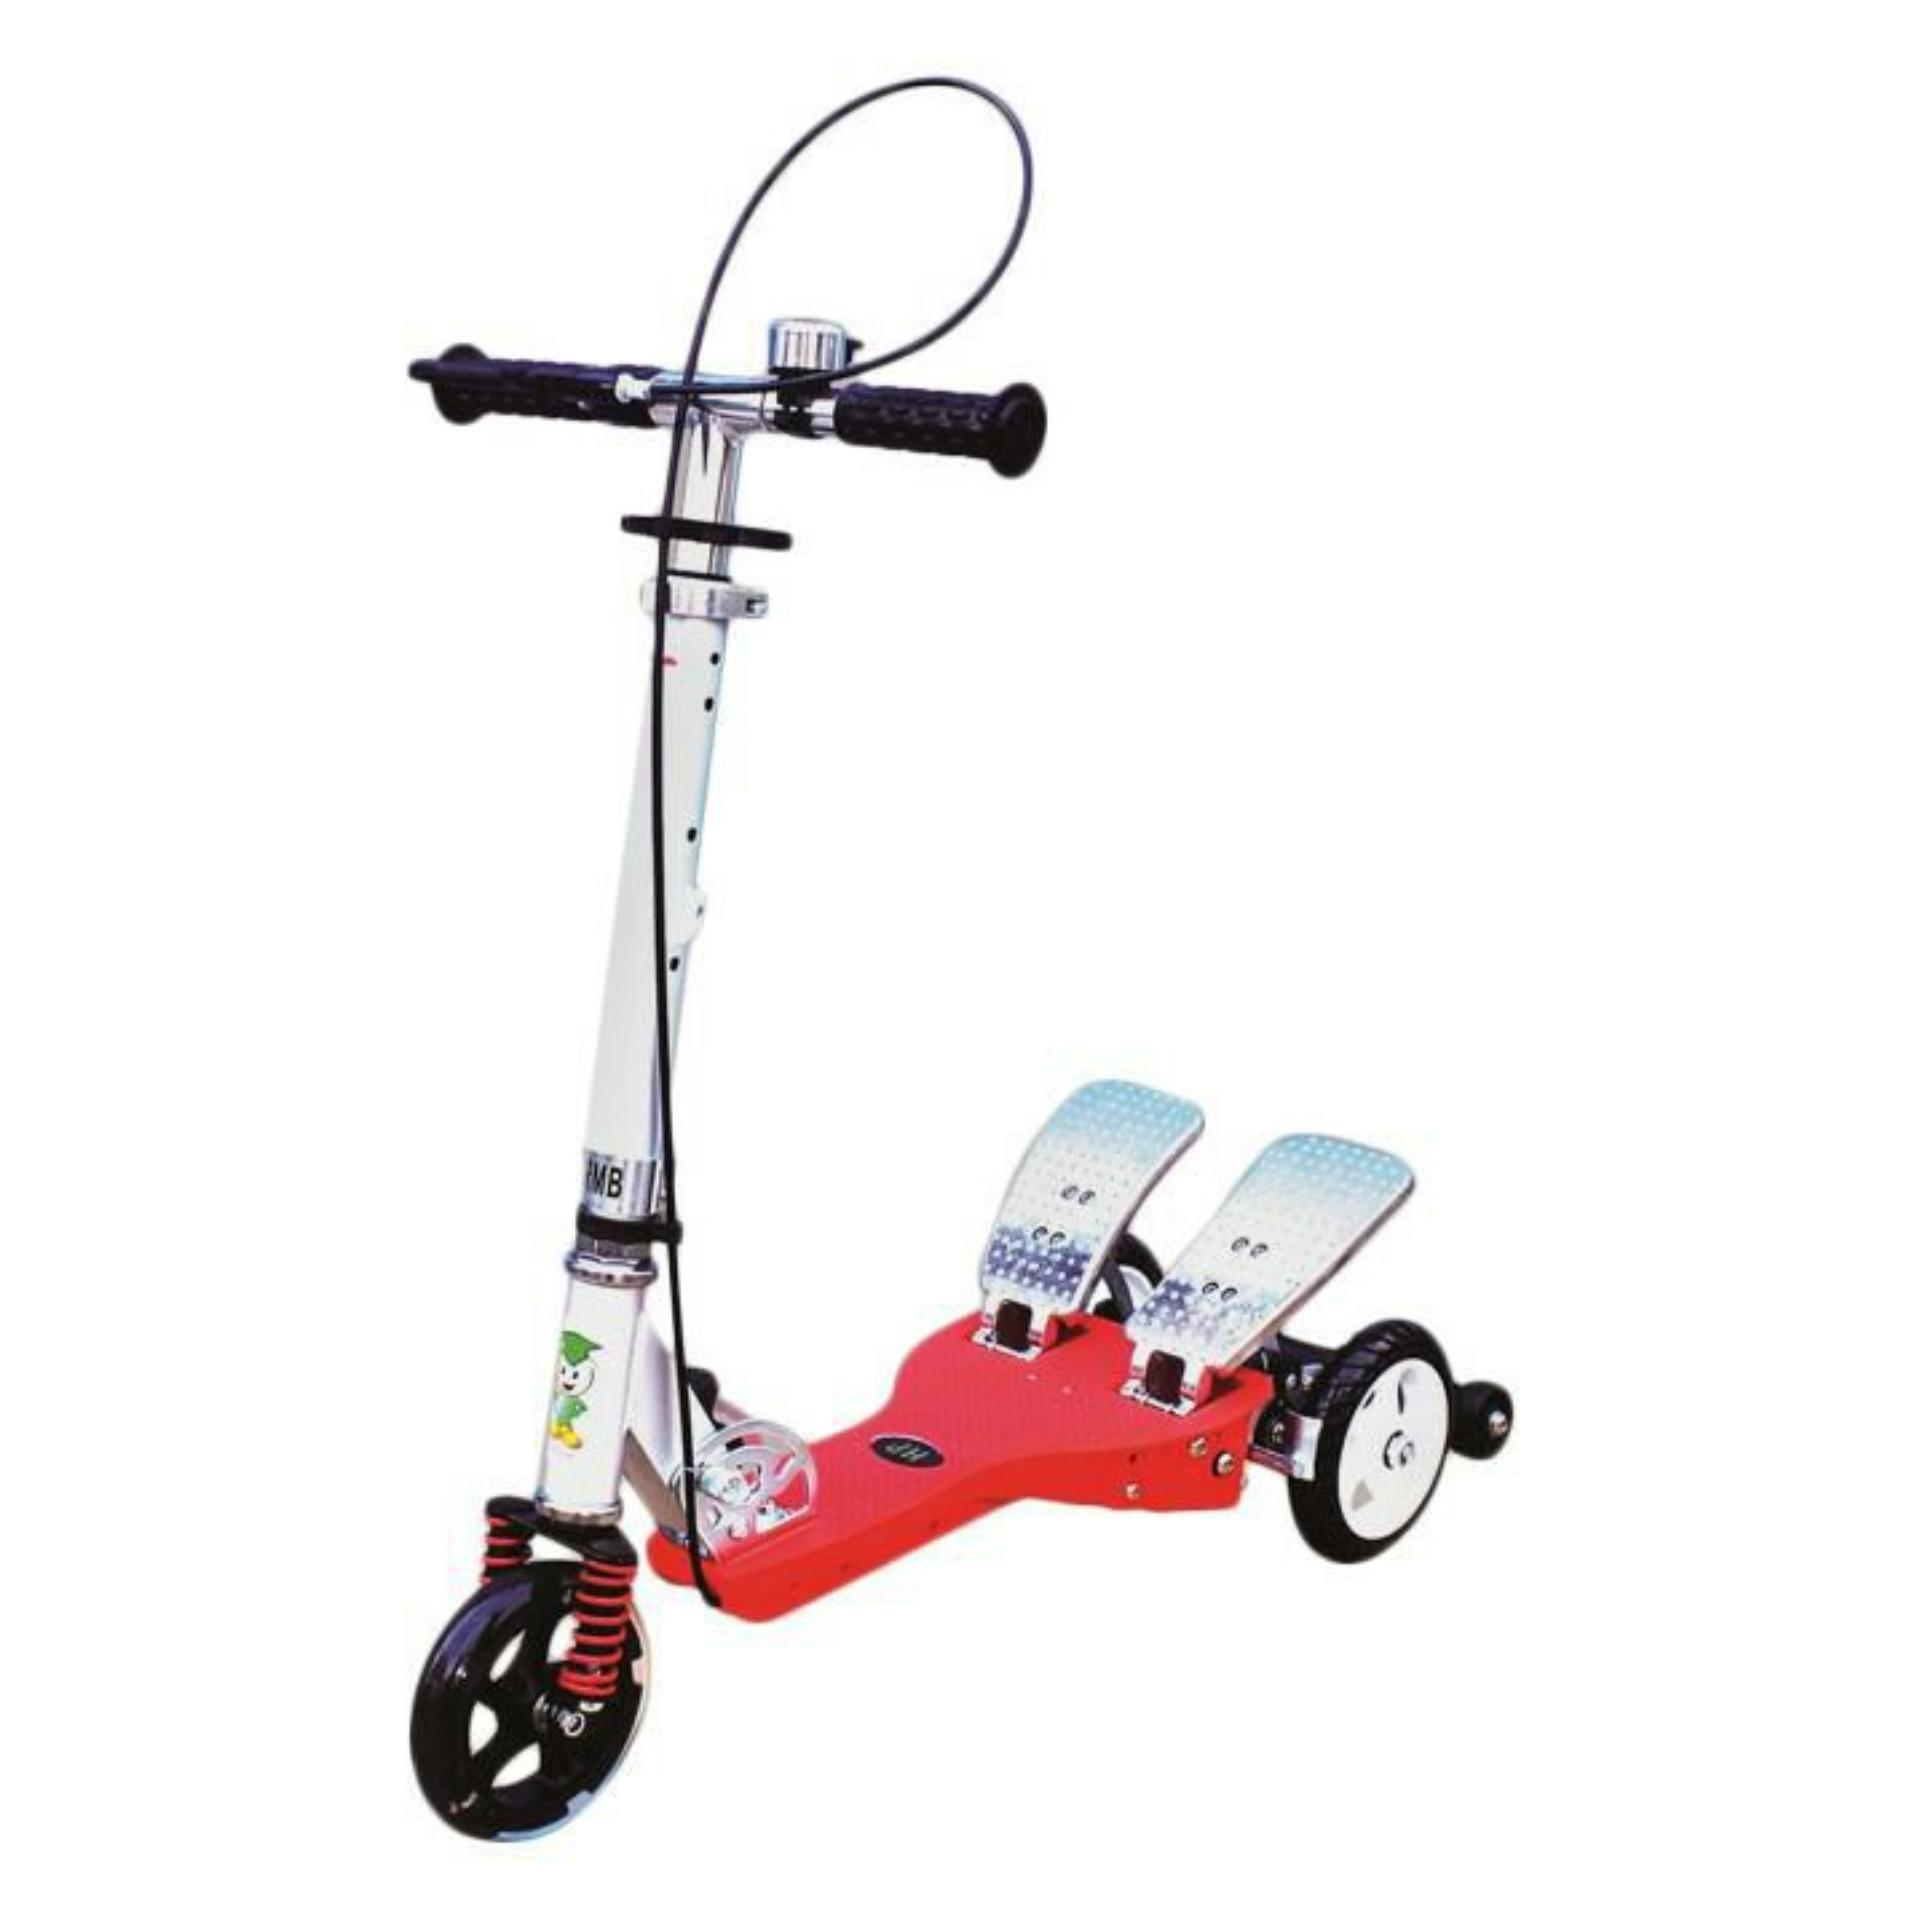 Skuter Scooter Injak Otopet RMB QY11AP